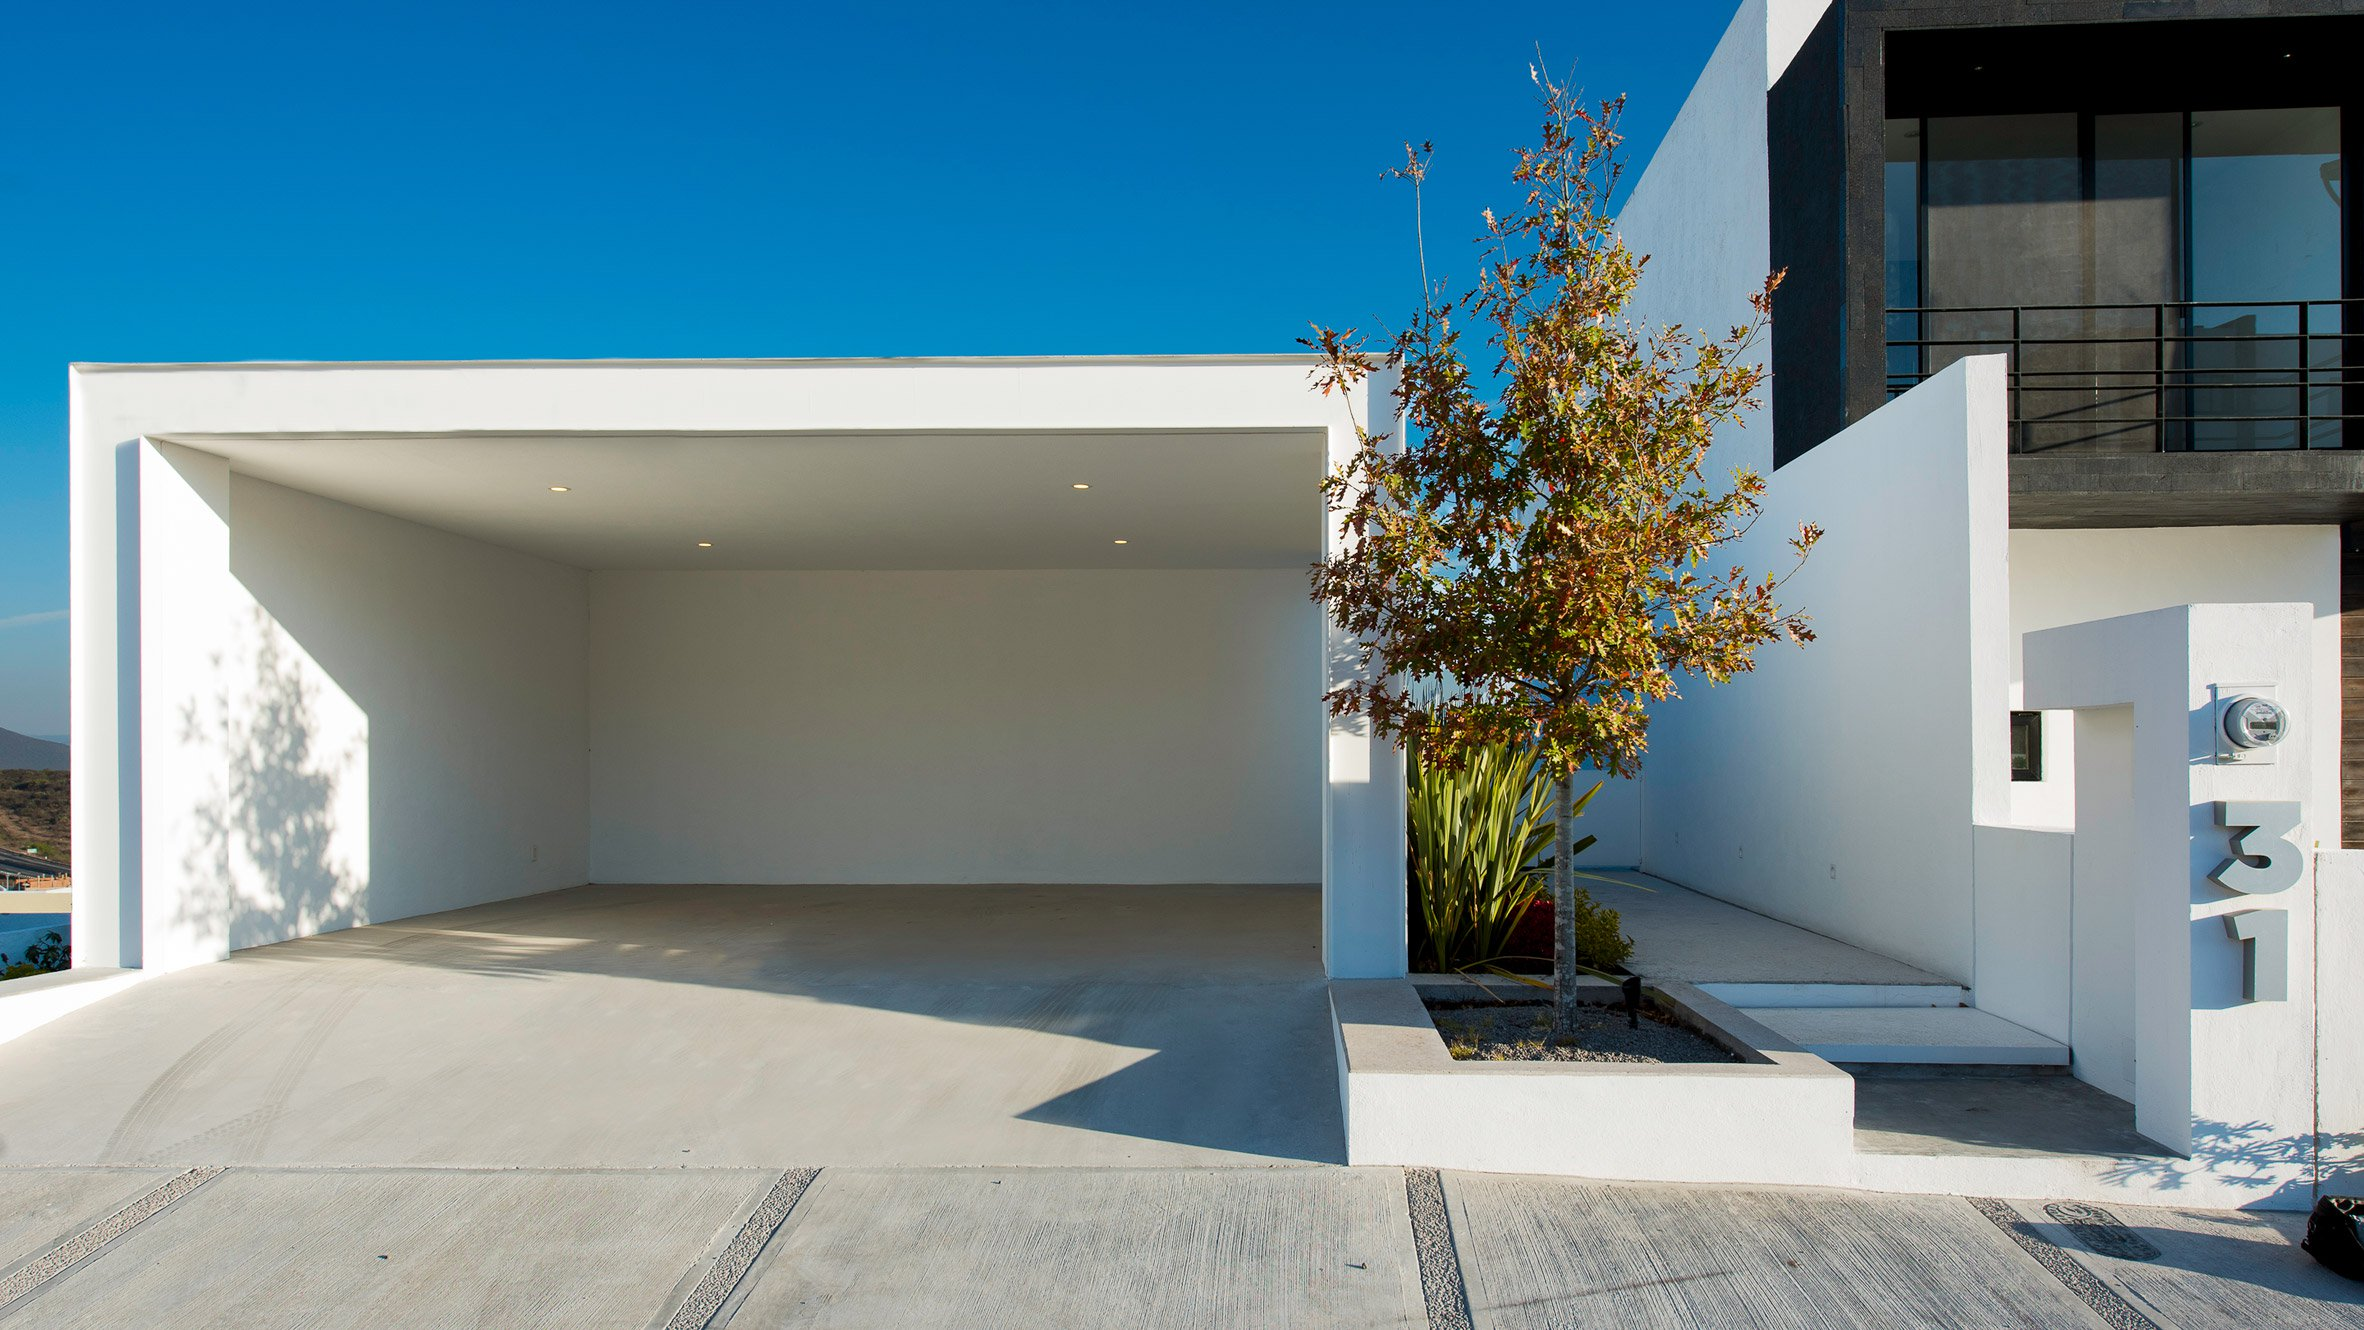 Glazing surrounds white house by Evelop Arquitectura to provide vistas of Mexican dale